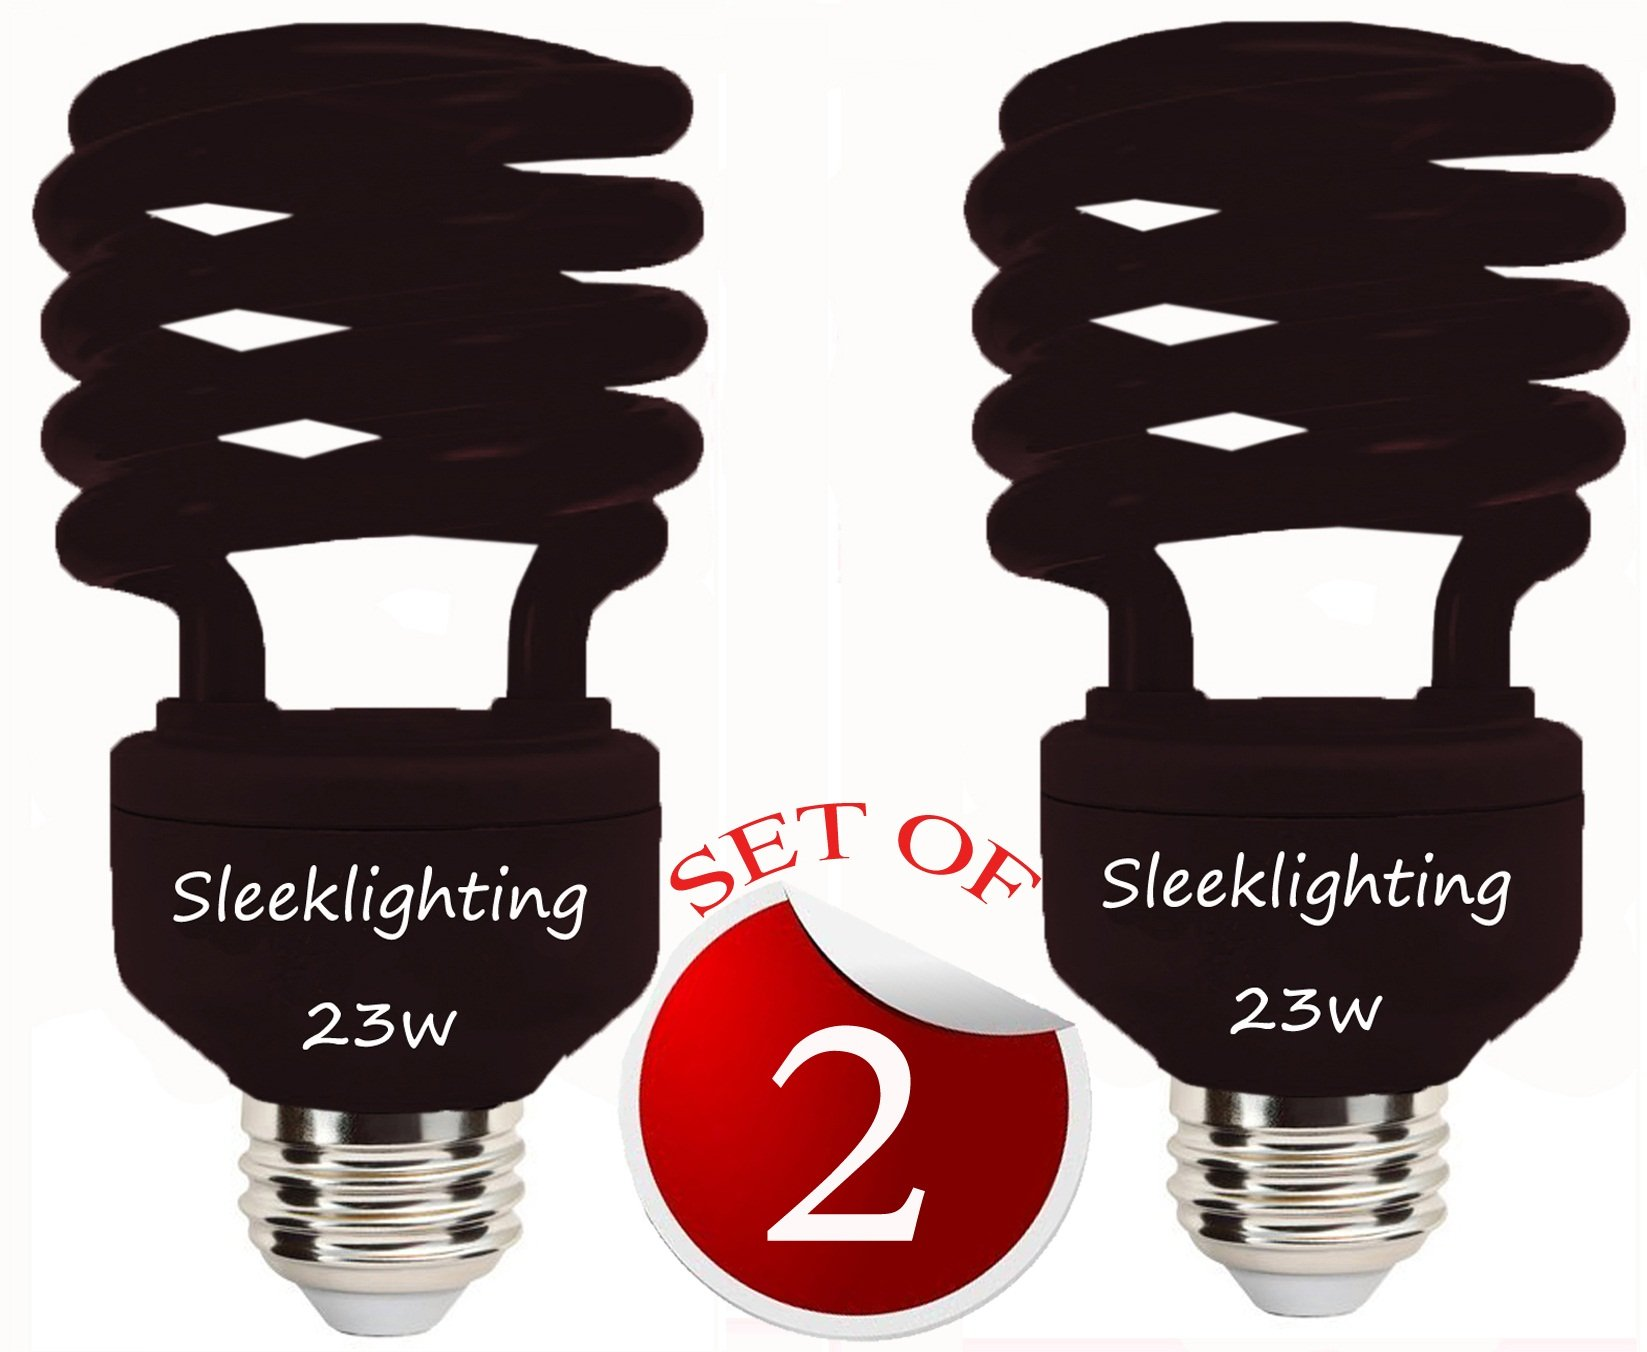 SleekLighting 23 Watt T2 BLACK Light Spiral CFL Light Bulb, 120V, E26 Medium Base-Energy Saver (Pack of 2)